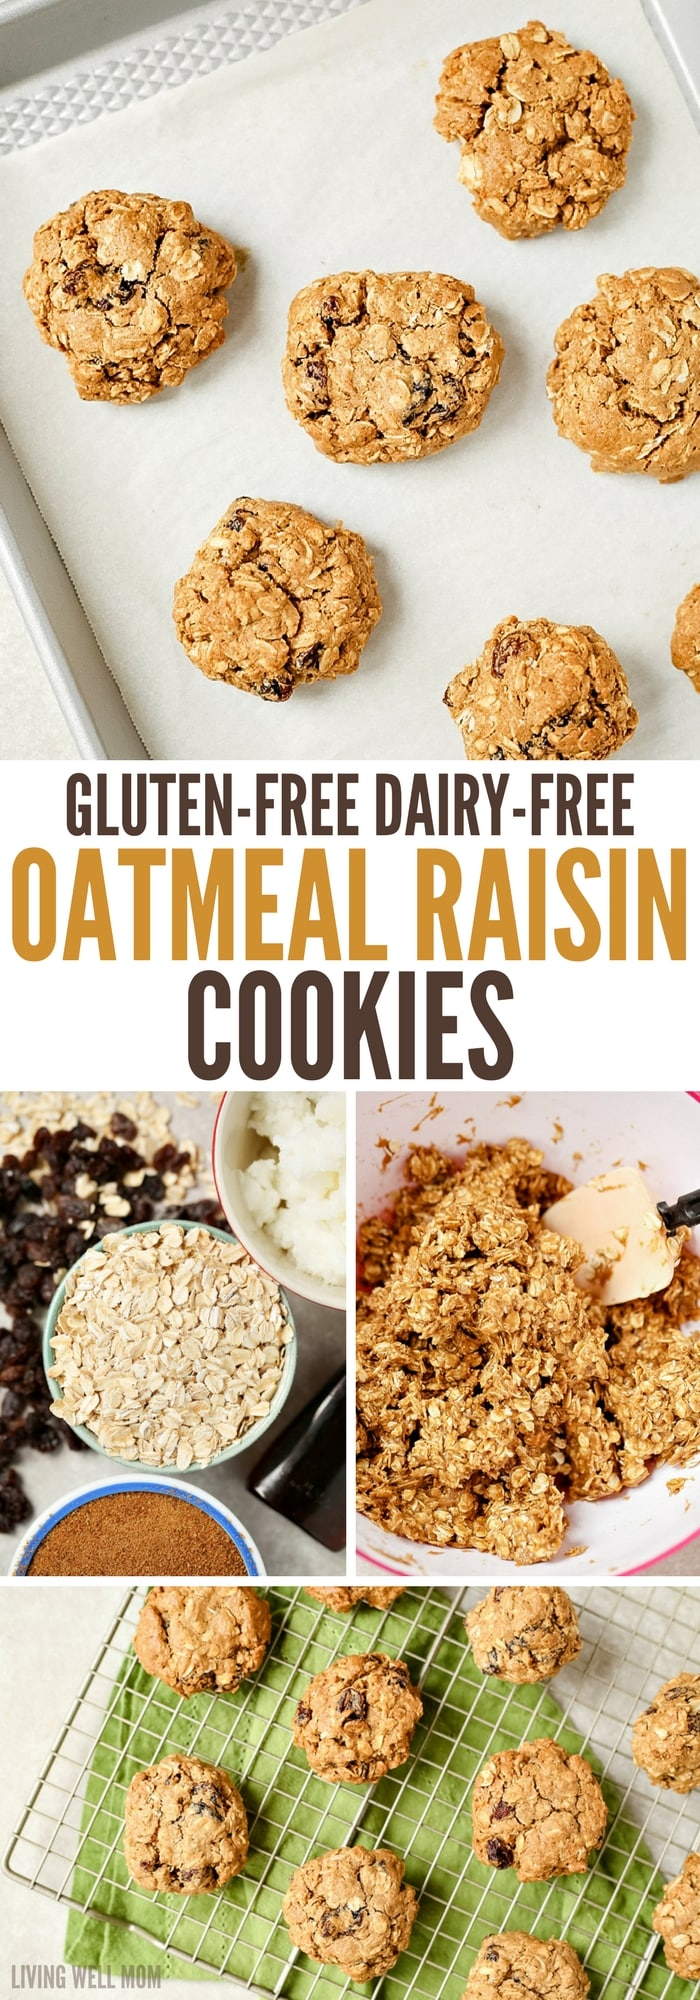 Gluten-free, dairy-free Oatmeal Raisin Cookies are so chewy, thick, and delicious, no one ever guesses they're not 'regular cookies! This kid-favorite recipe is deliciously spiced with cinnamon and a hint of nutmeg and chock full of raisins.